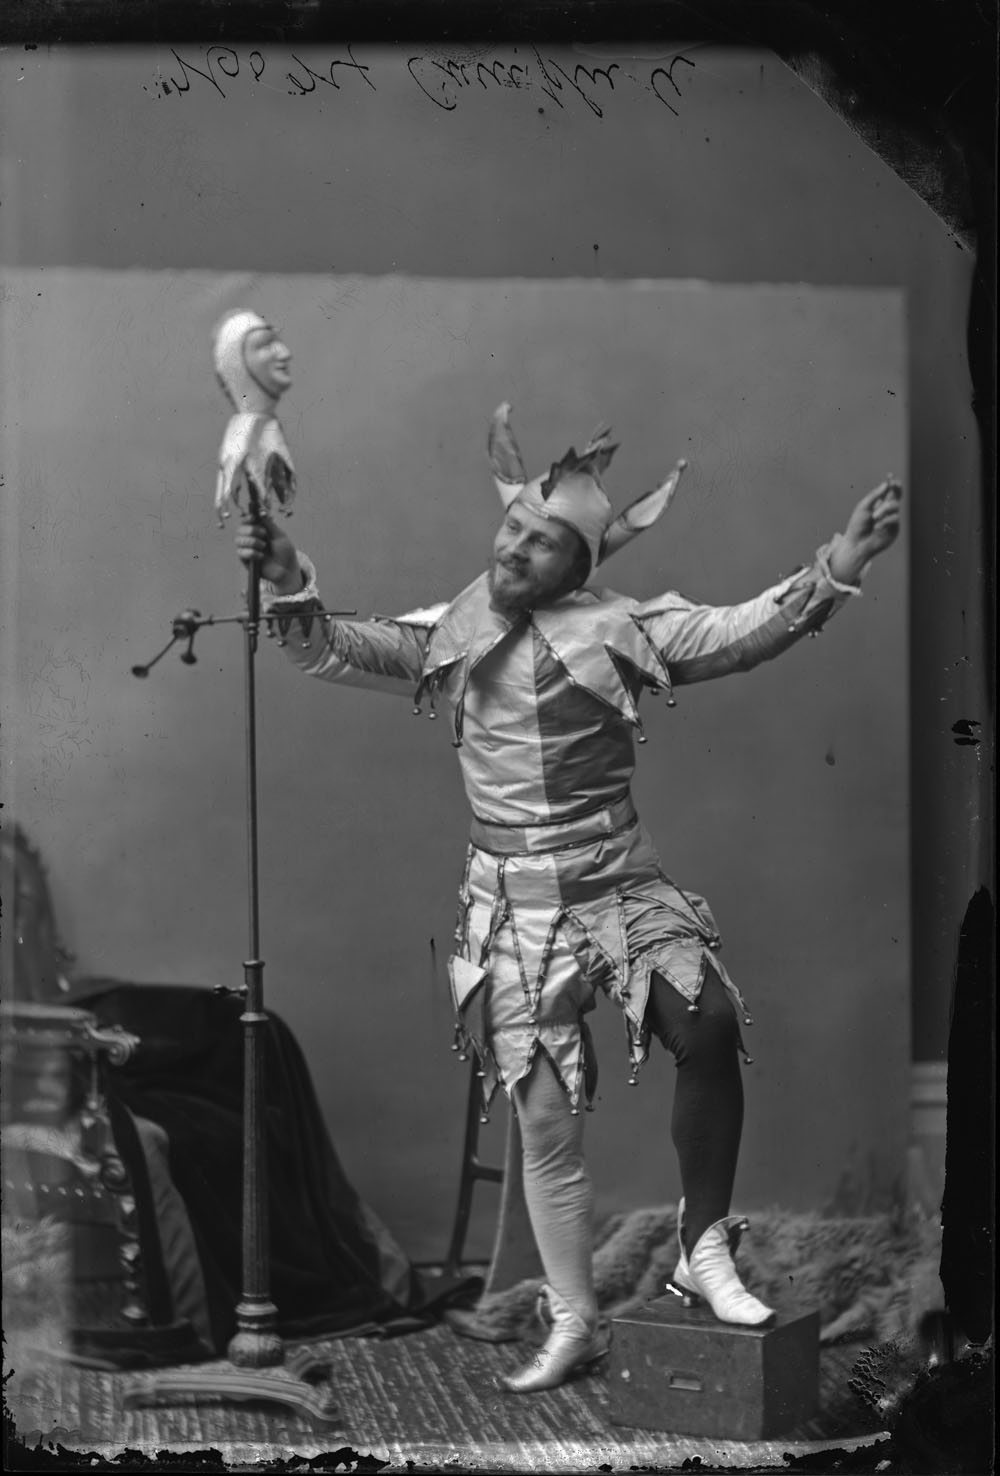 A black-and-white photograph of a man dressed as a jester and posing in a photography studio. He grasps a puppet on a stand in his right hand.